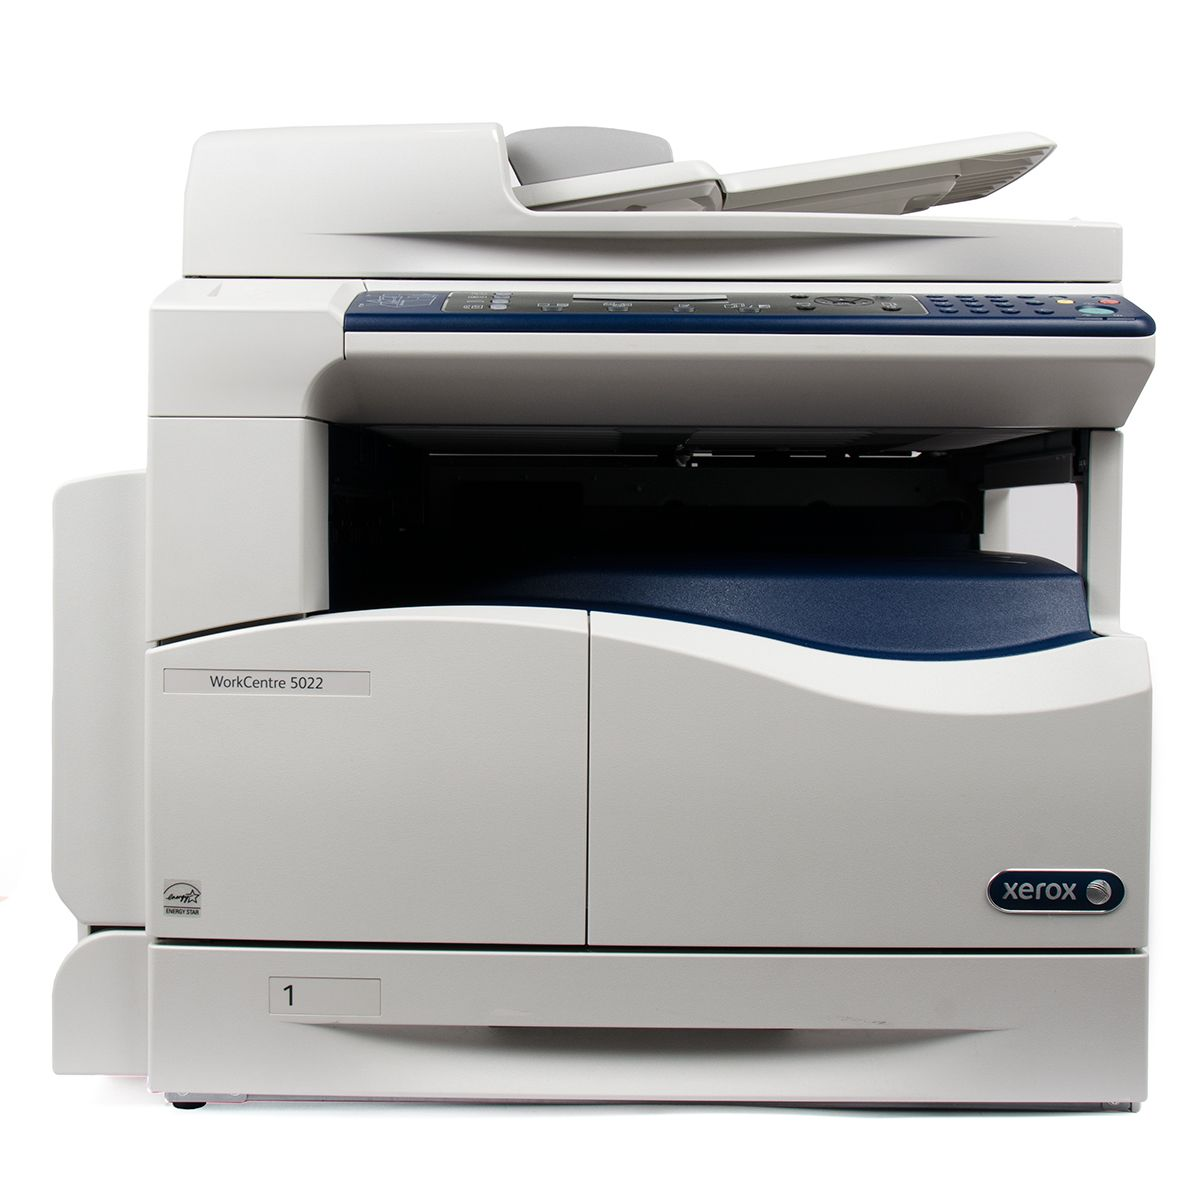 Multifunctional Laser Monocrom Xerox WorkCentre 5022